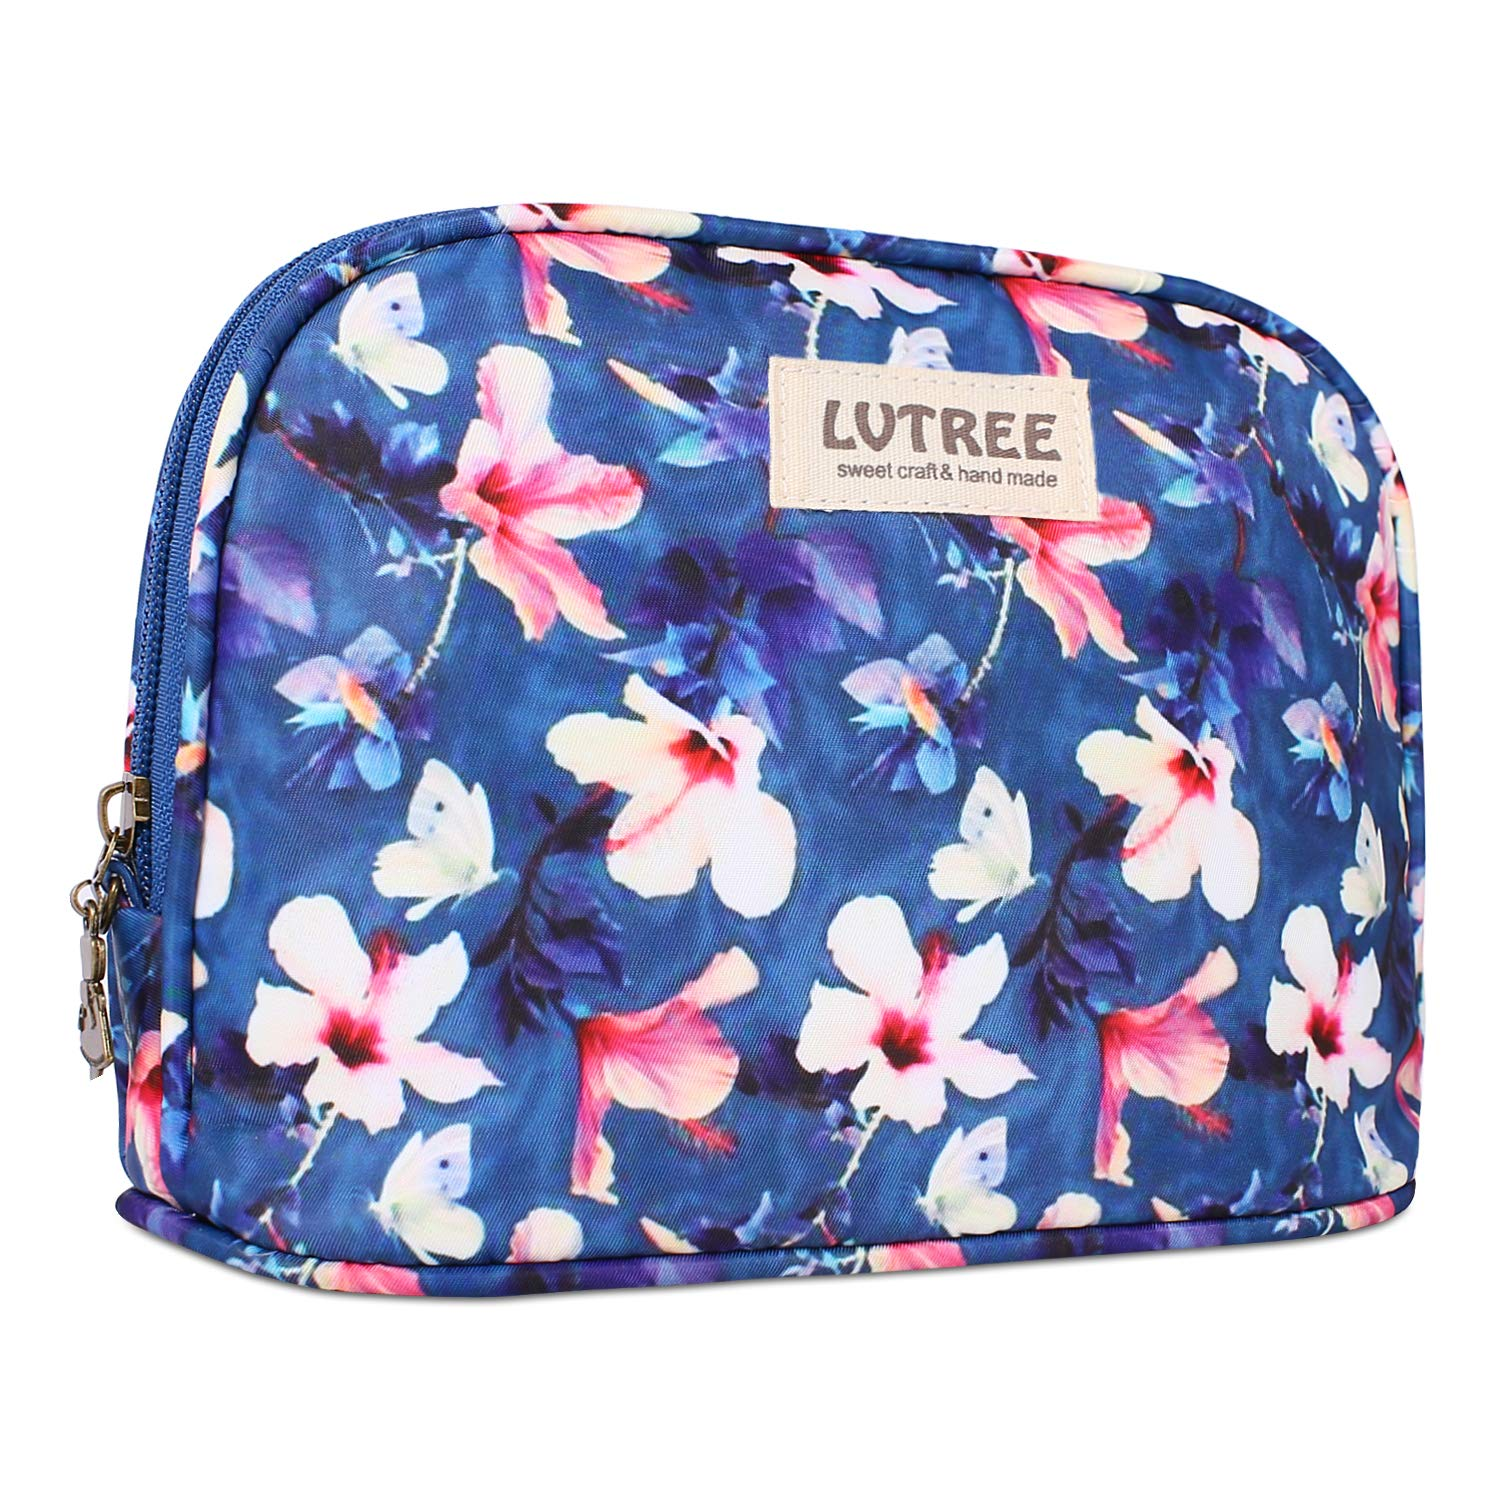 Lvtree Cosmetic Makeup Bag, Portable Handy Waterproof Travel Organizer Countryside Flower Floral Pencil Pen Sleeve Case Cosmetic Toiletry Pouch Purse for Women Girls, Blue